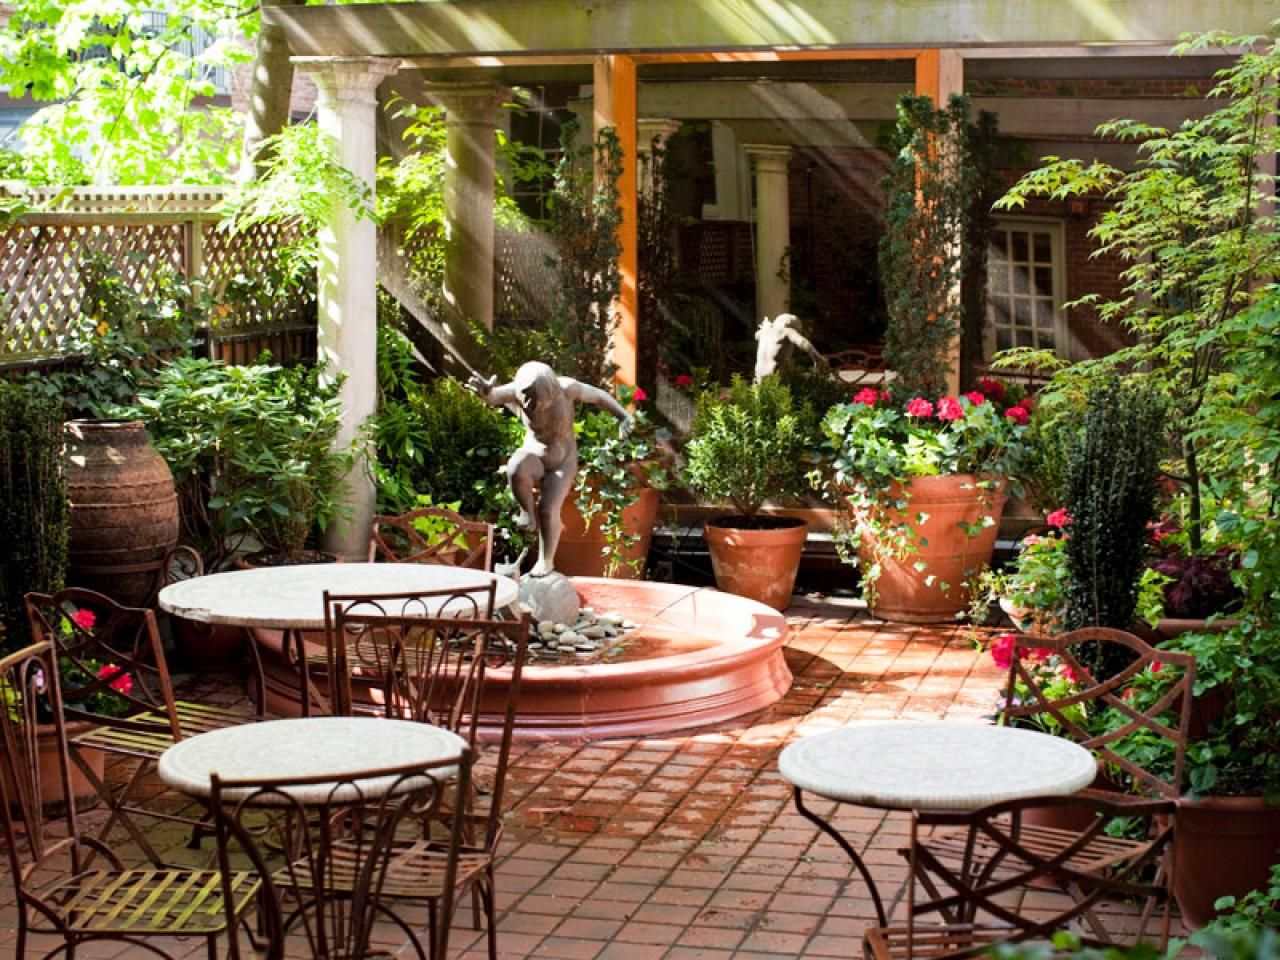 Optimize Your Small Outdoor Space | Pinterest | Hgtv, Outdoor spaces ...